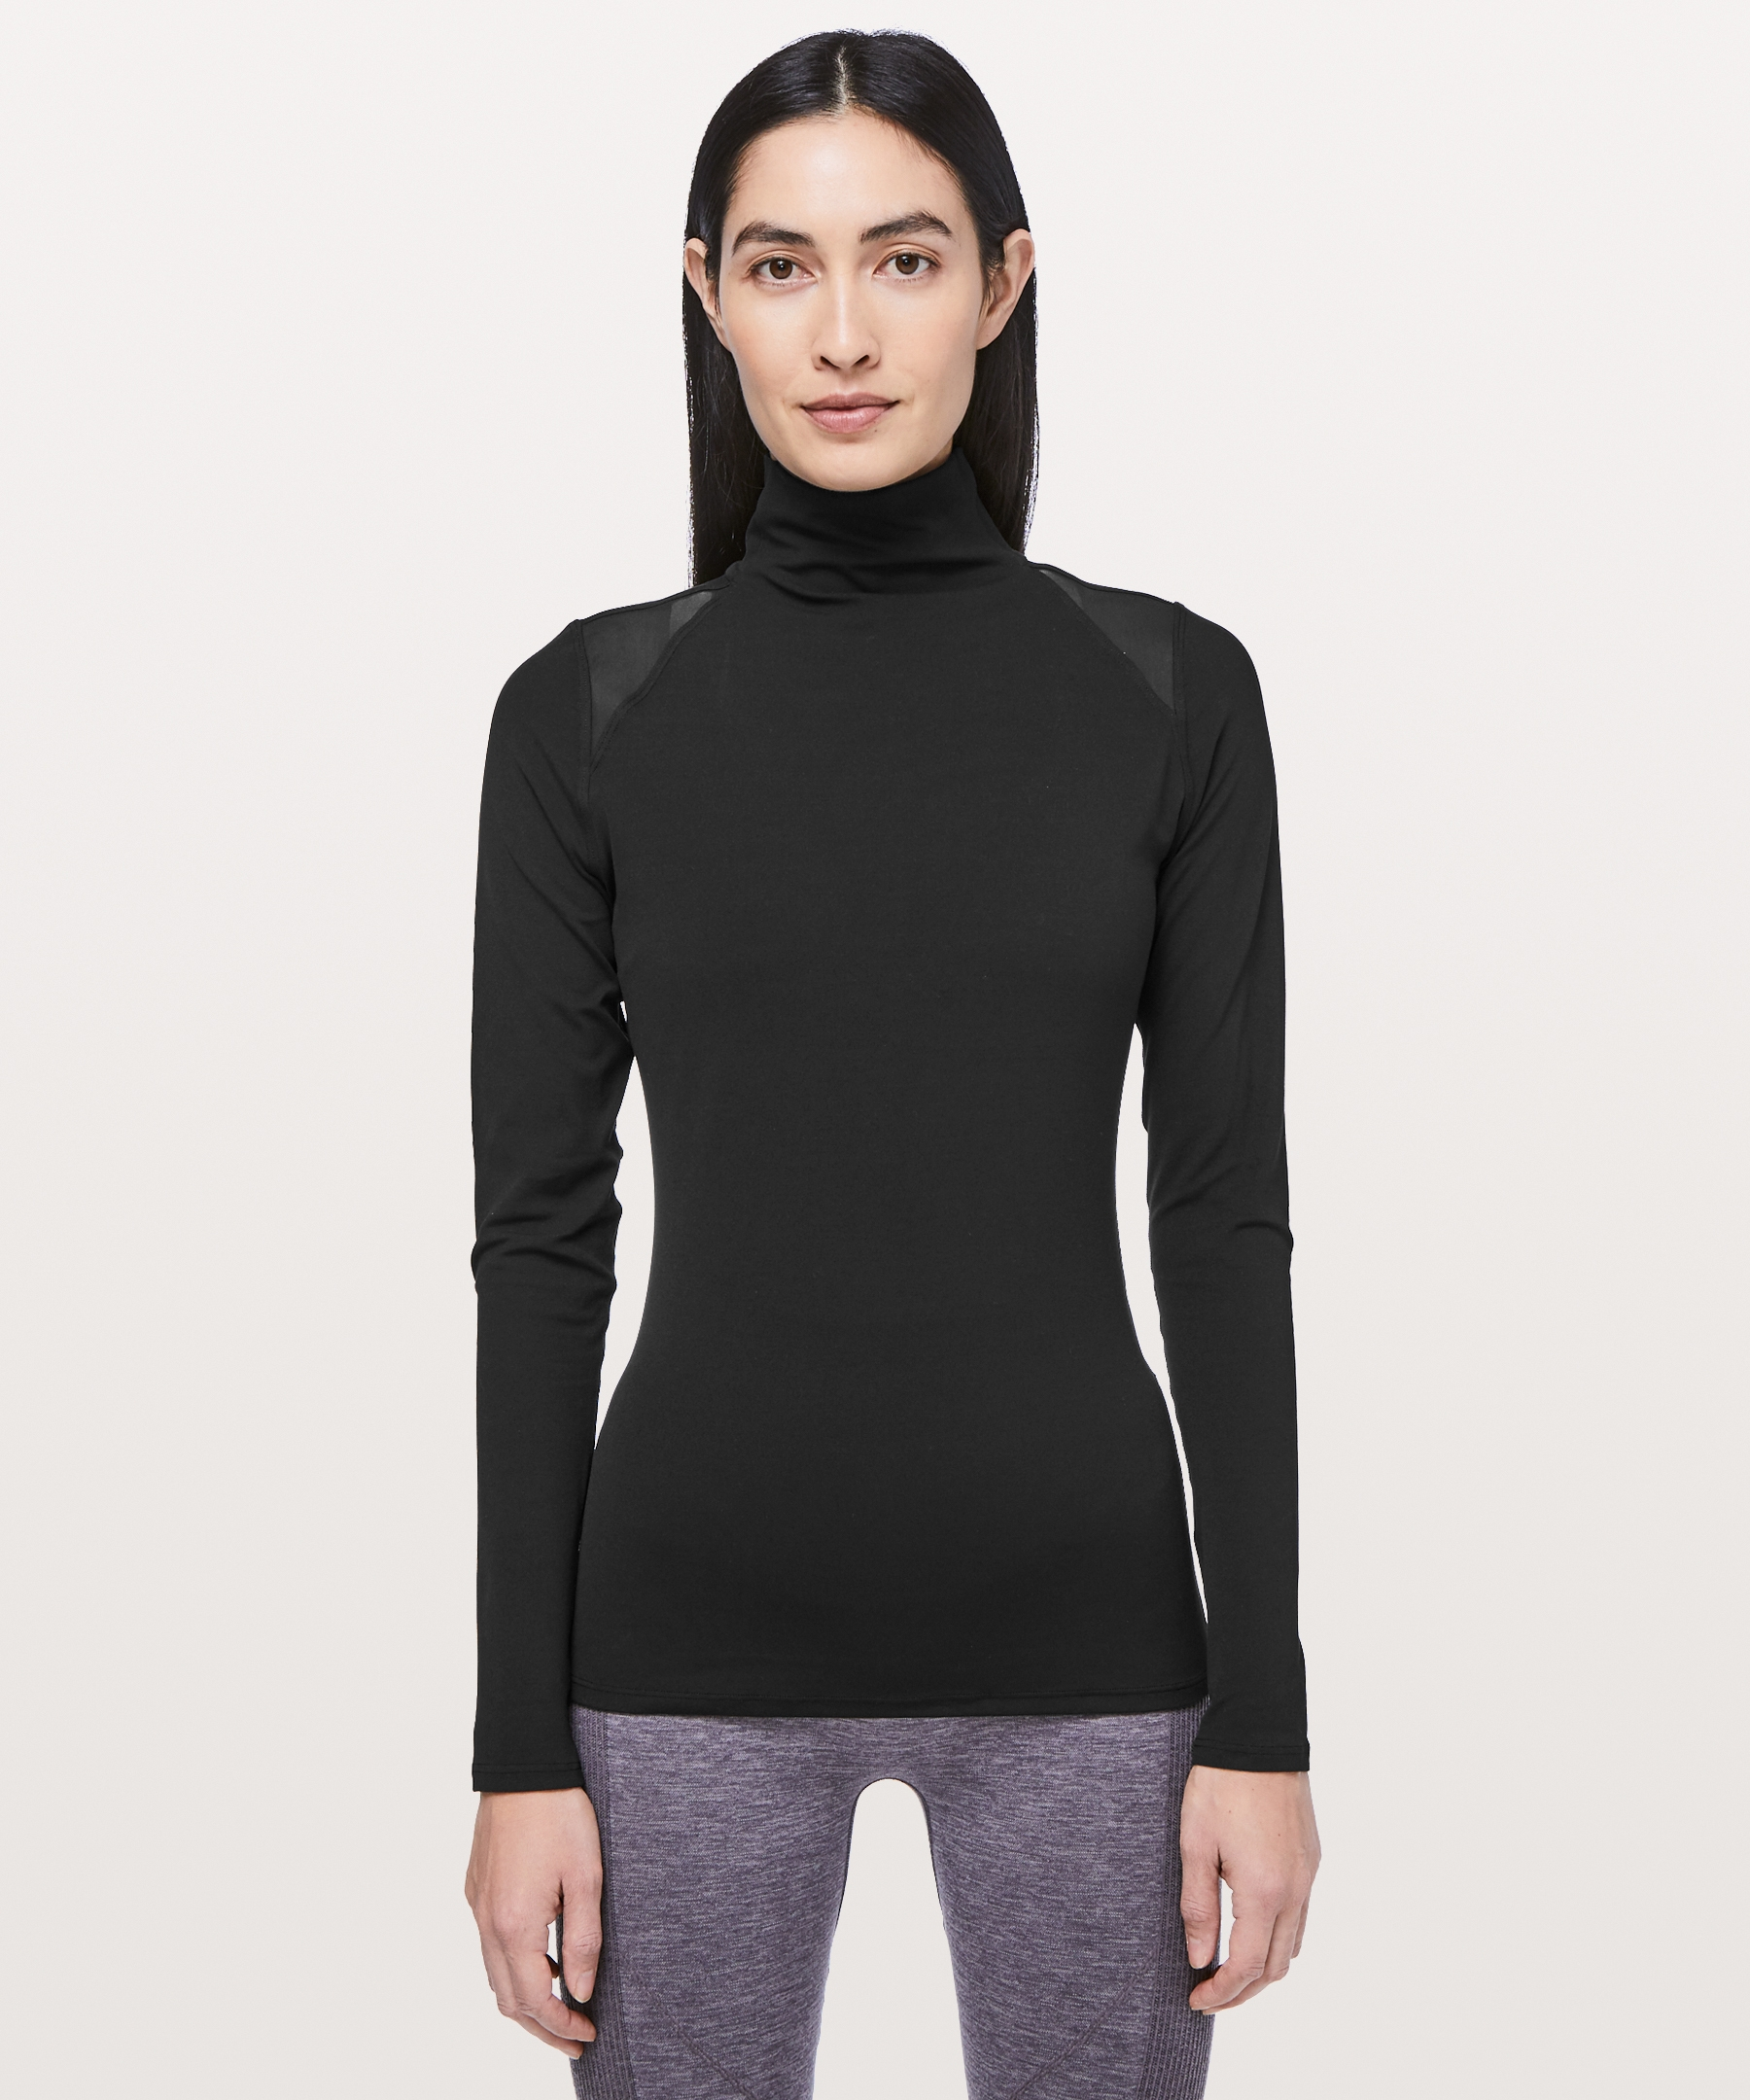 Ethereal mock neck discover the lightness of our buttery